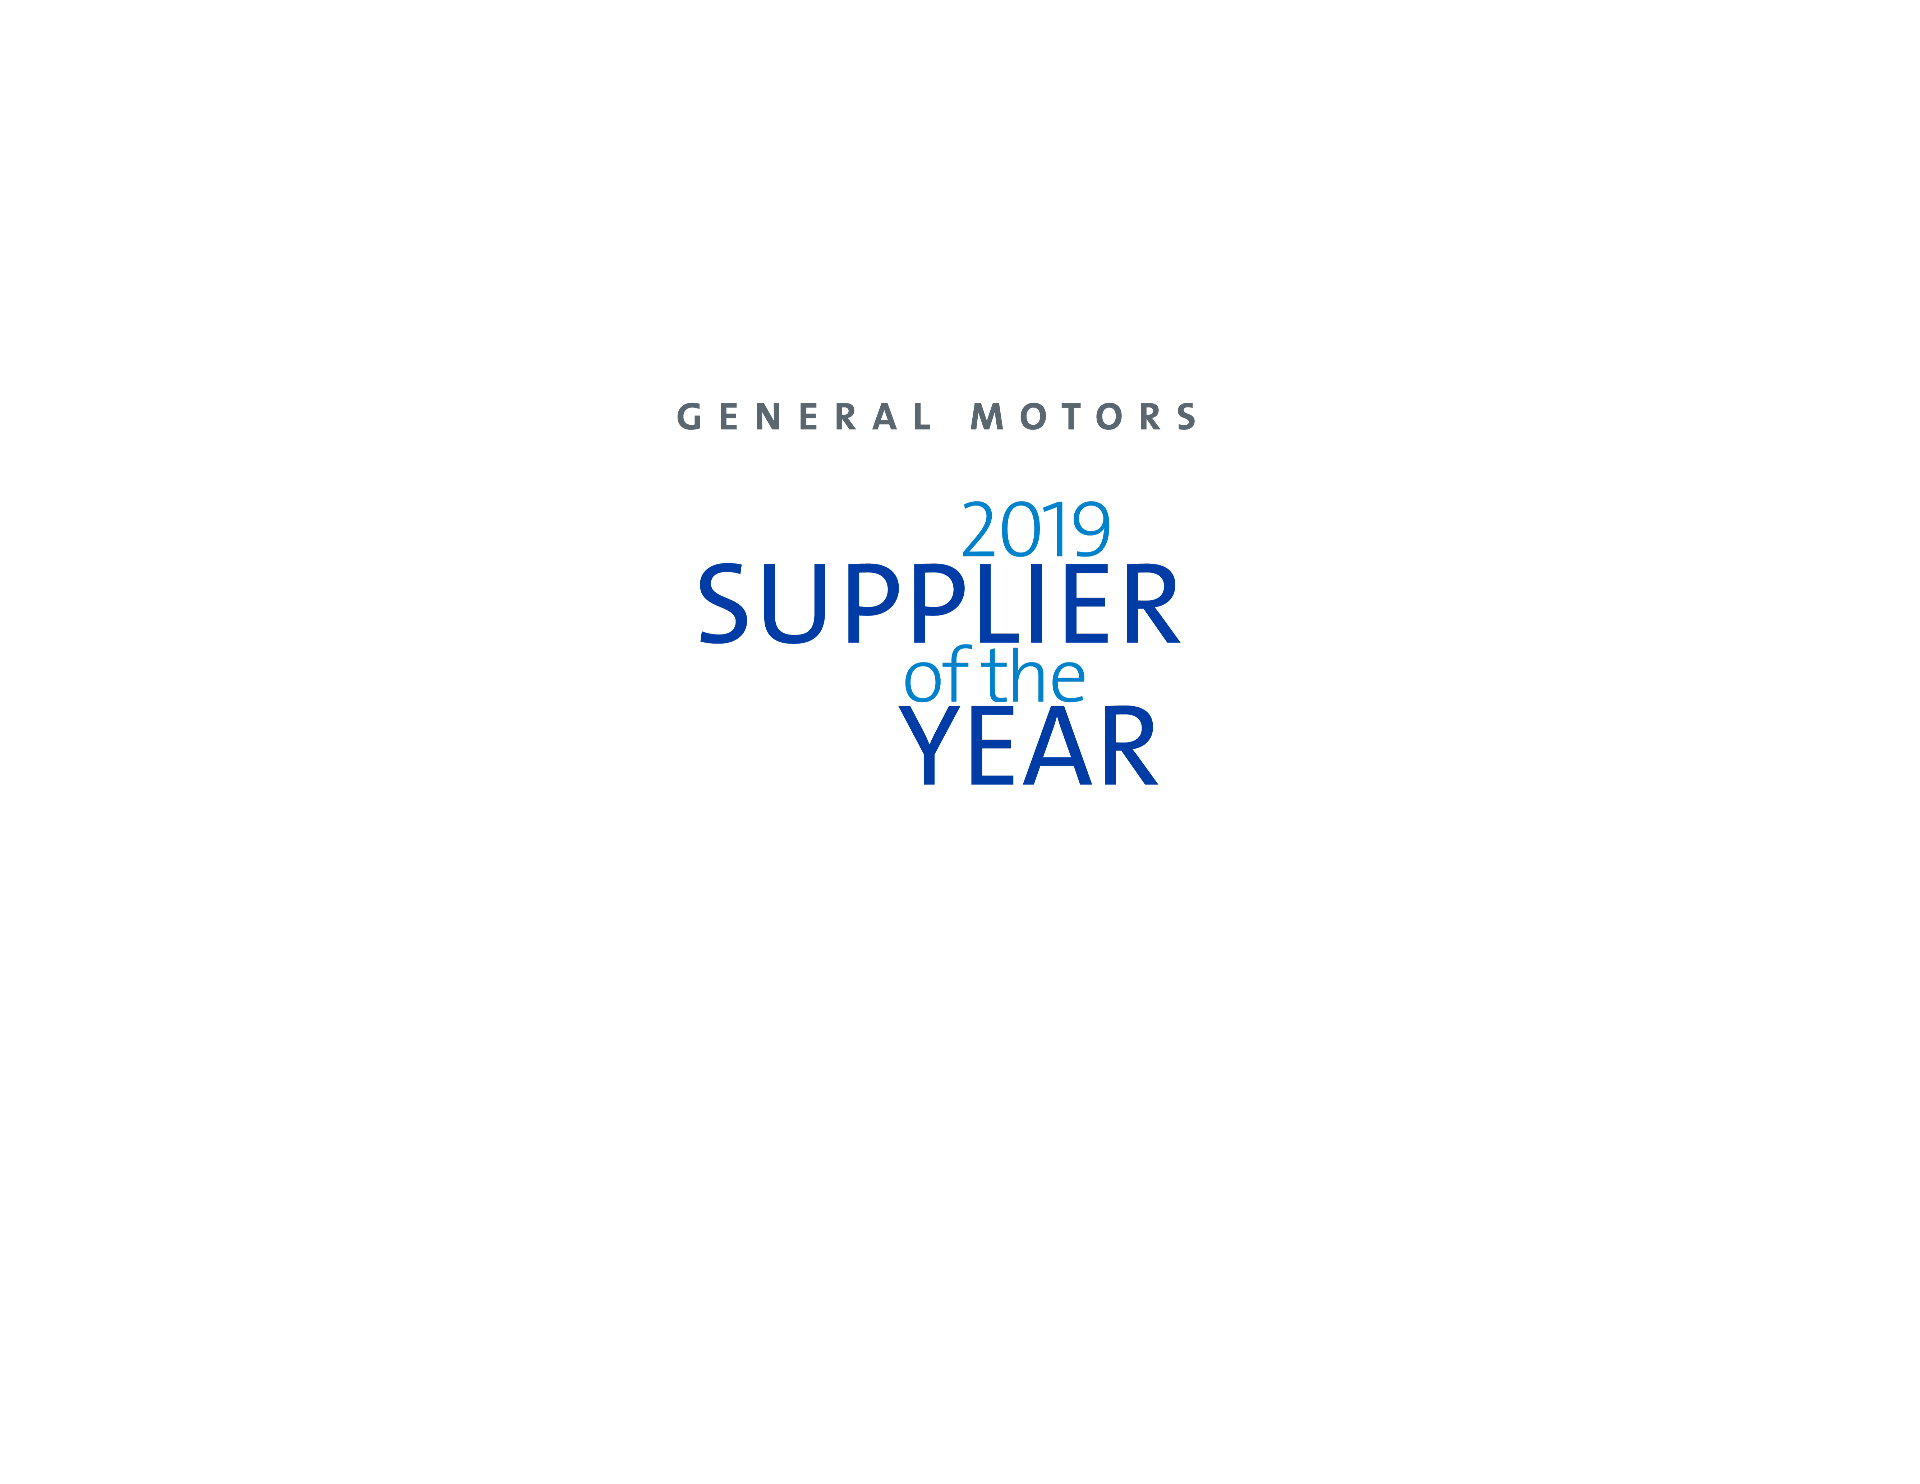 Innolux Corporation Recognized by General Motors as a 2019 Supplier of the Year Winner